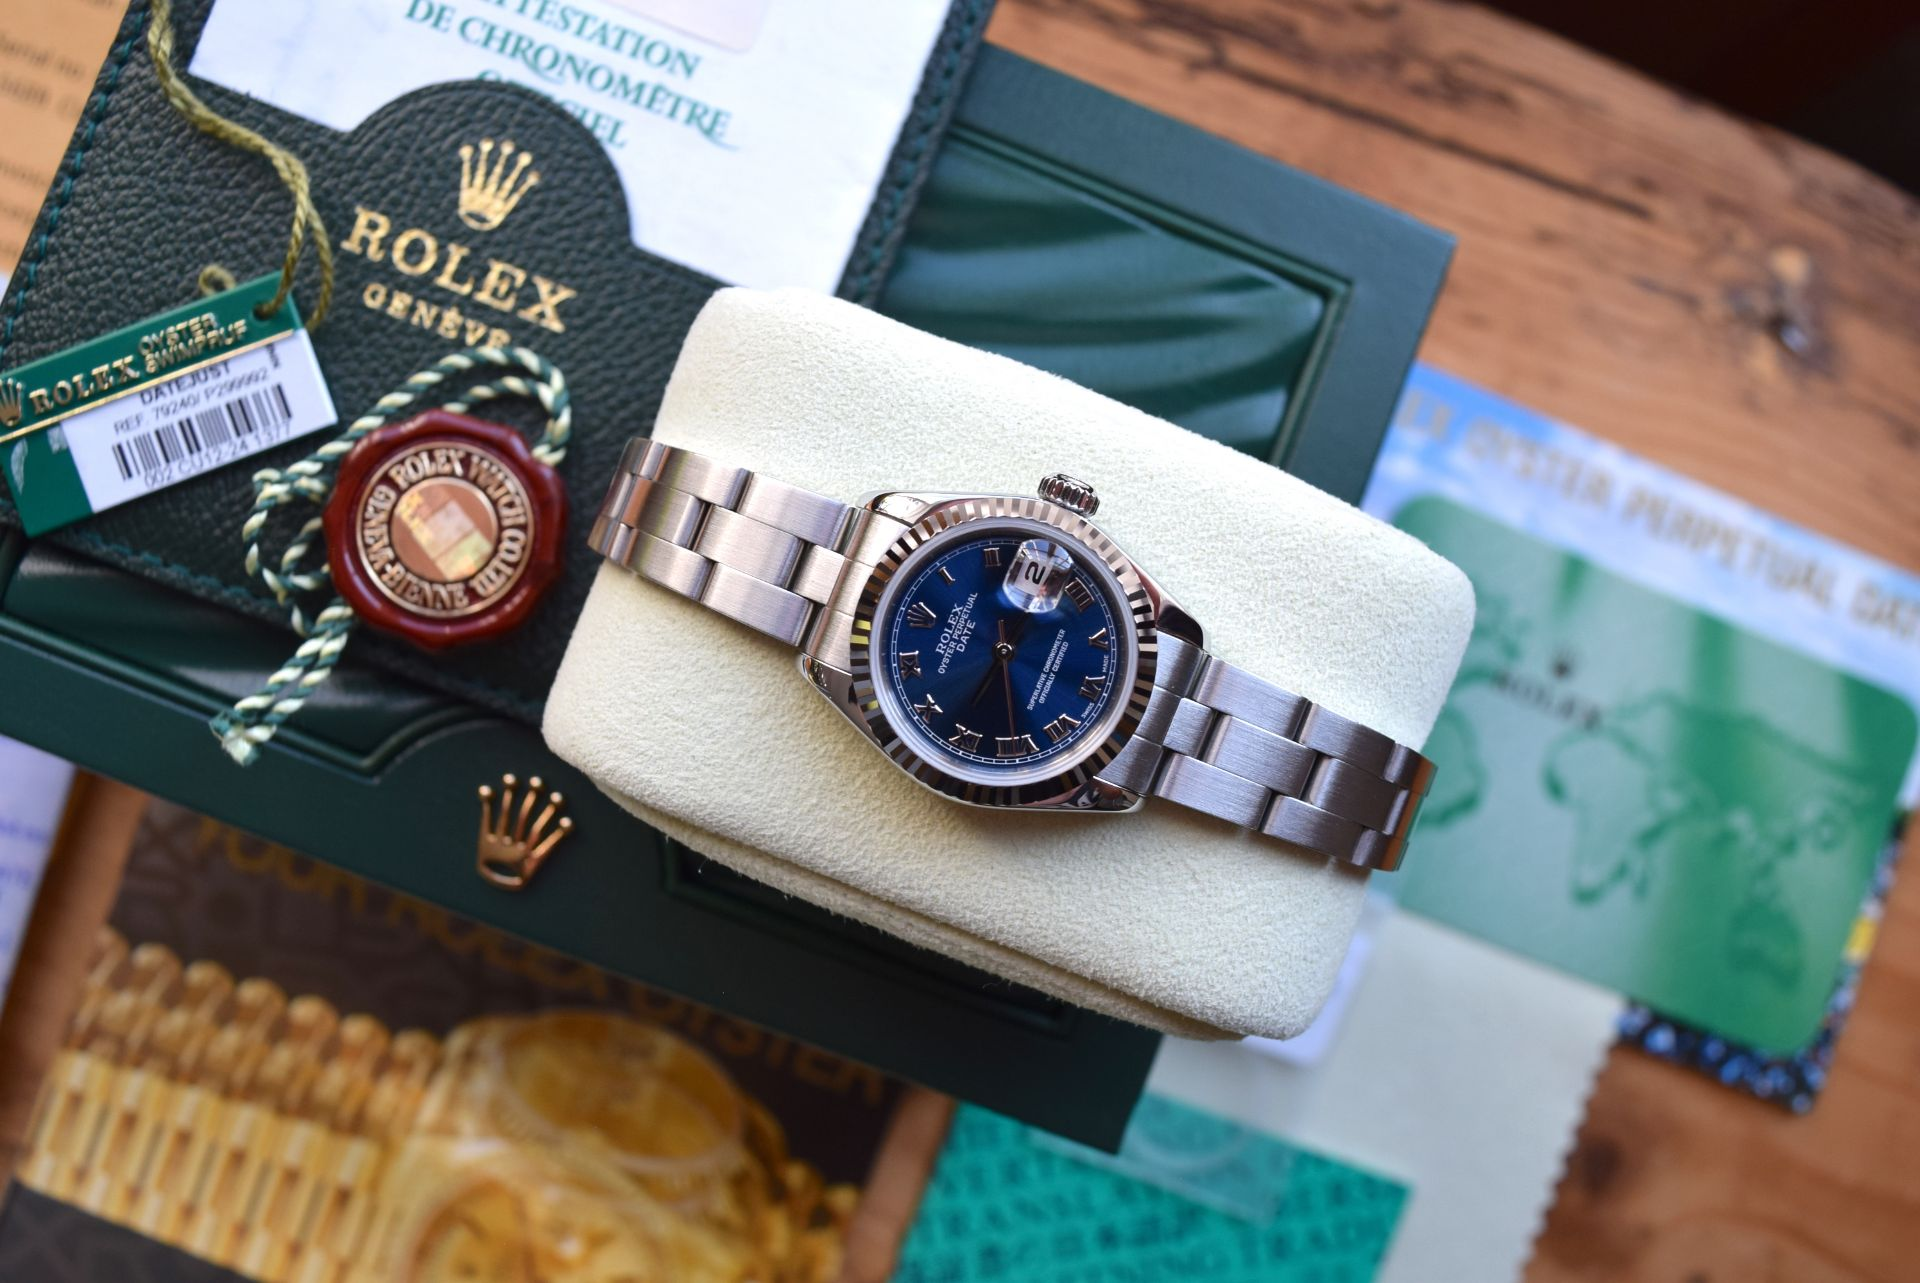 *FULL SET* ROLEX DATEJUST (LADIES) STEEL & 18CT WHITE GOLD - NAVY BLUE 'ROMAN NUMERAL' DIAL - Image 9 of 19